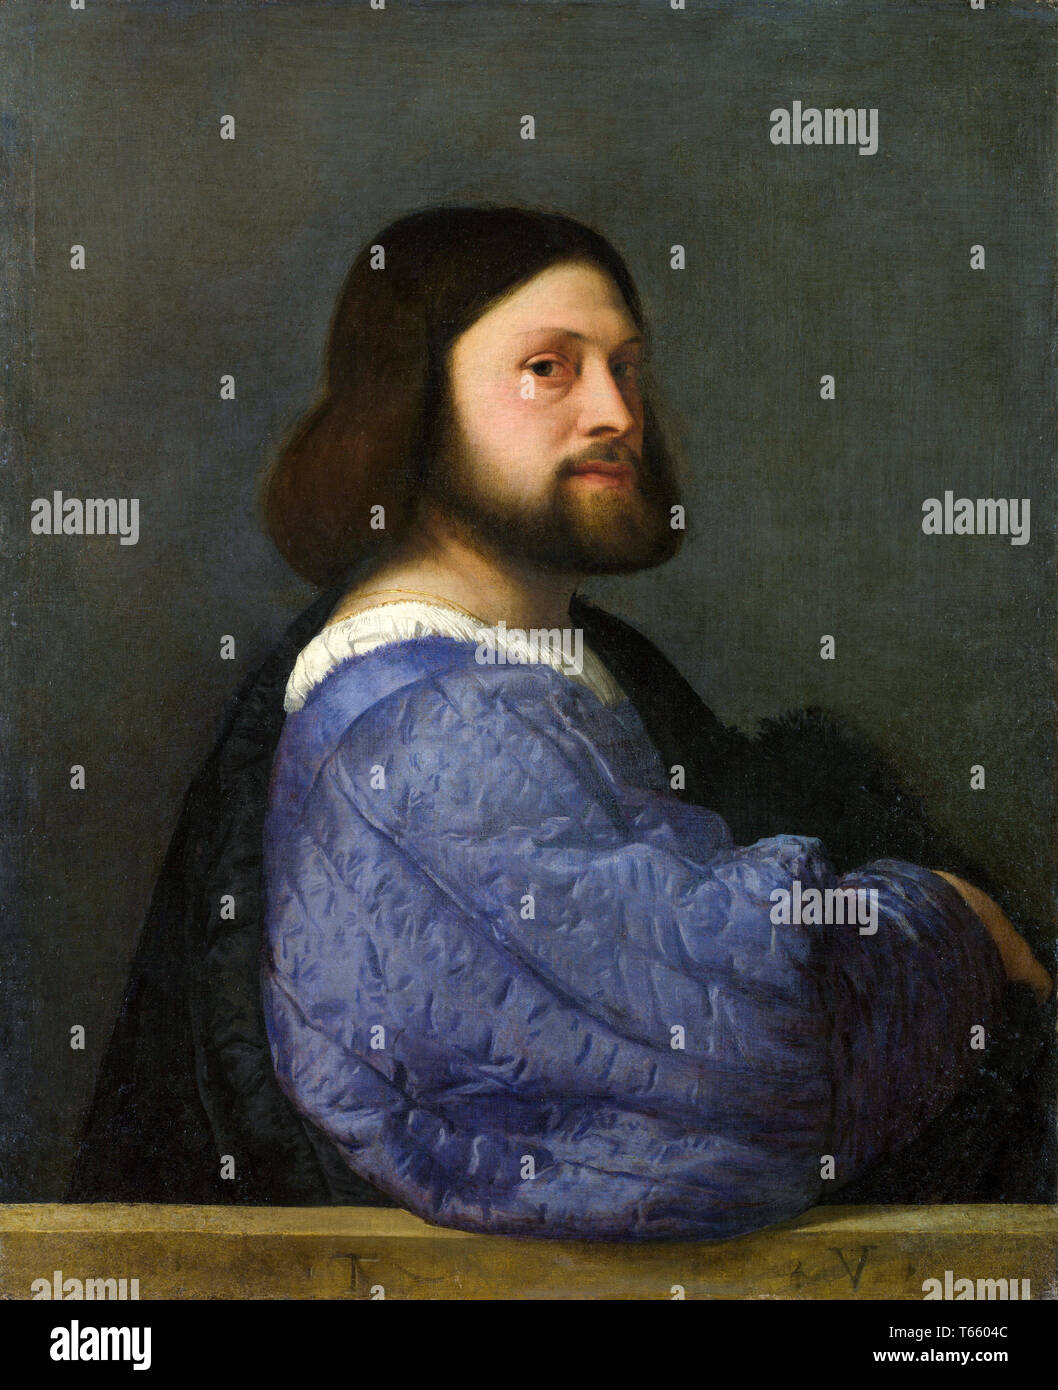 Titian, A Man with a Quilted Sleeve (Portrait of Ariosto), c. 1510 - Stock Image